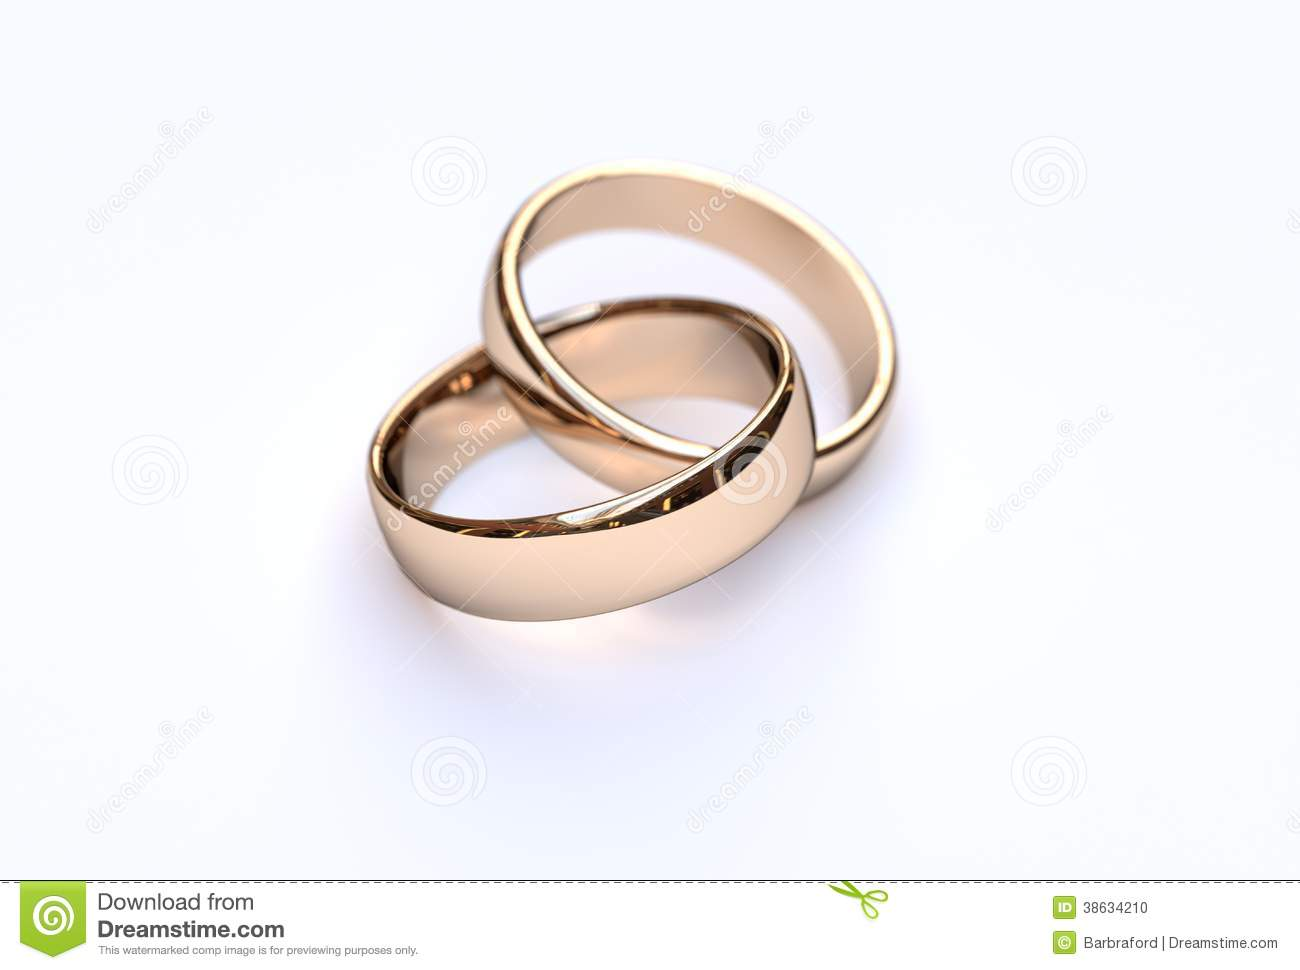 Couple Of Gold Wedding Rings On White Background Stock Photo - Image ...